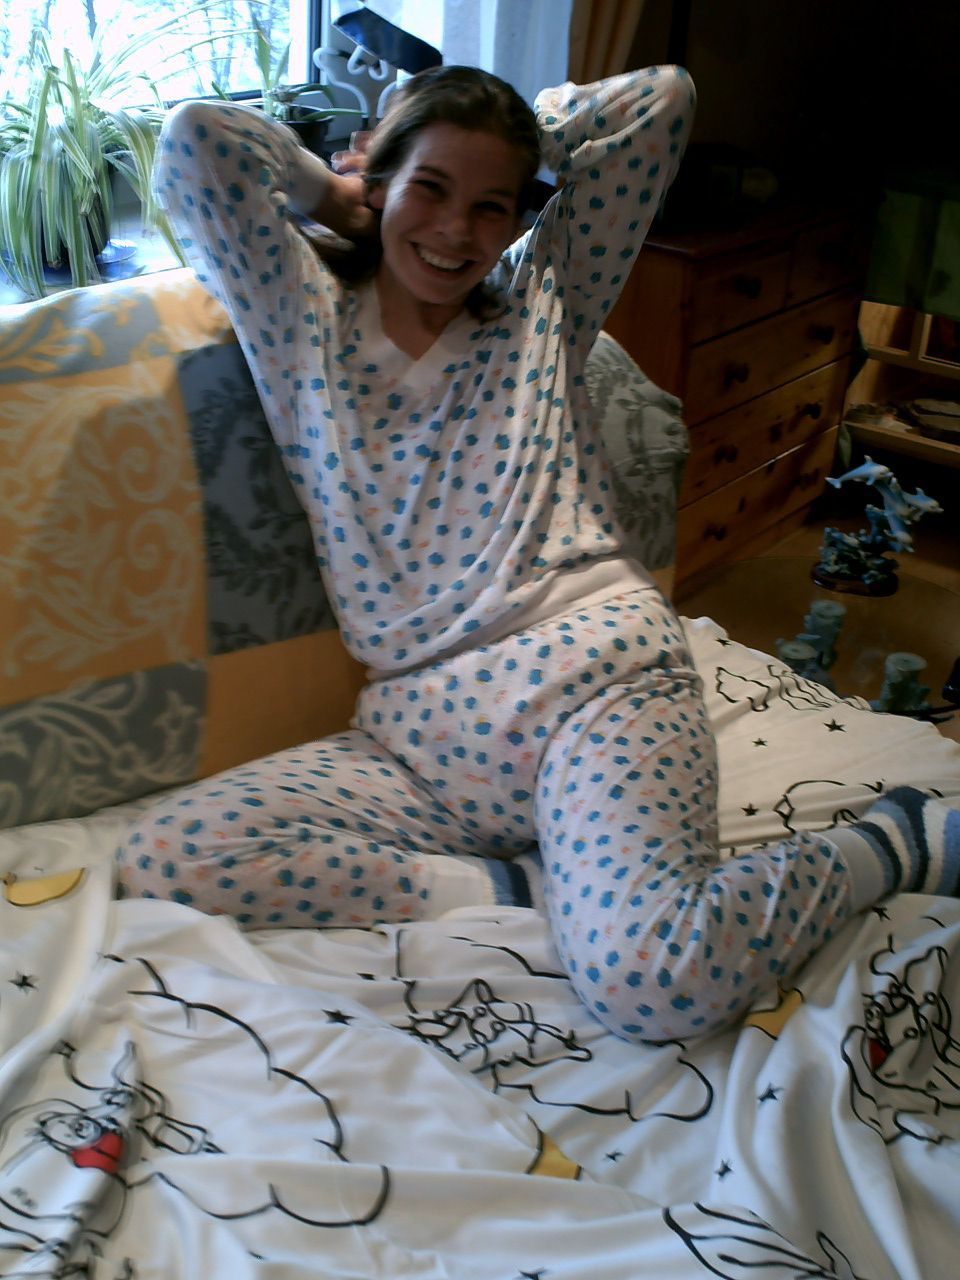 My Adult Baby Girl Abdl Pinterest Diapers Girls And